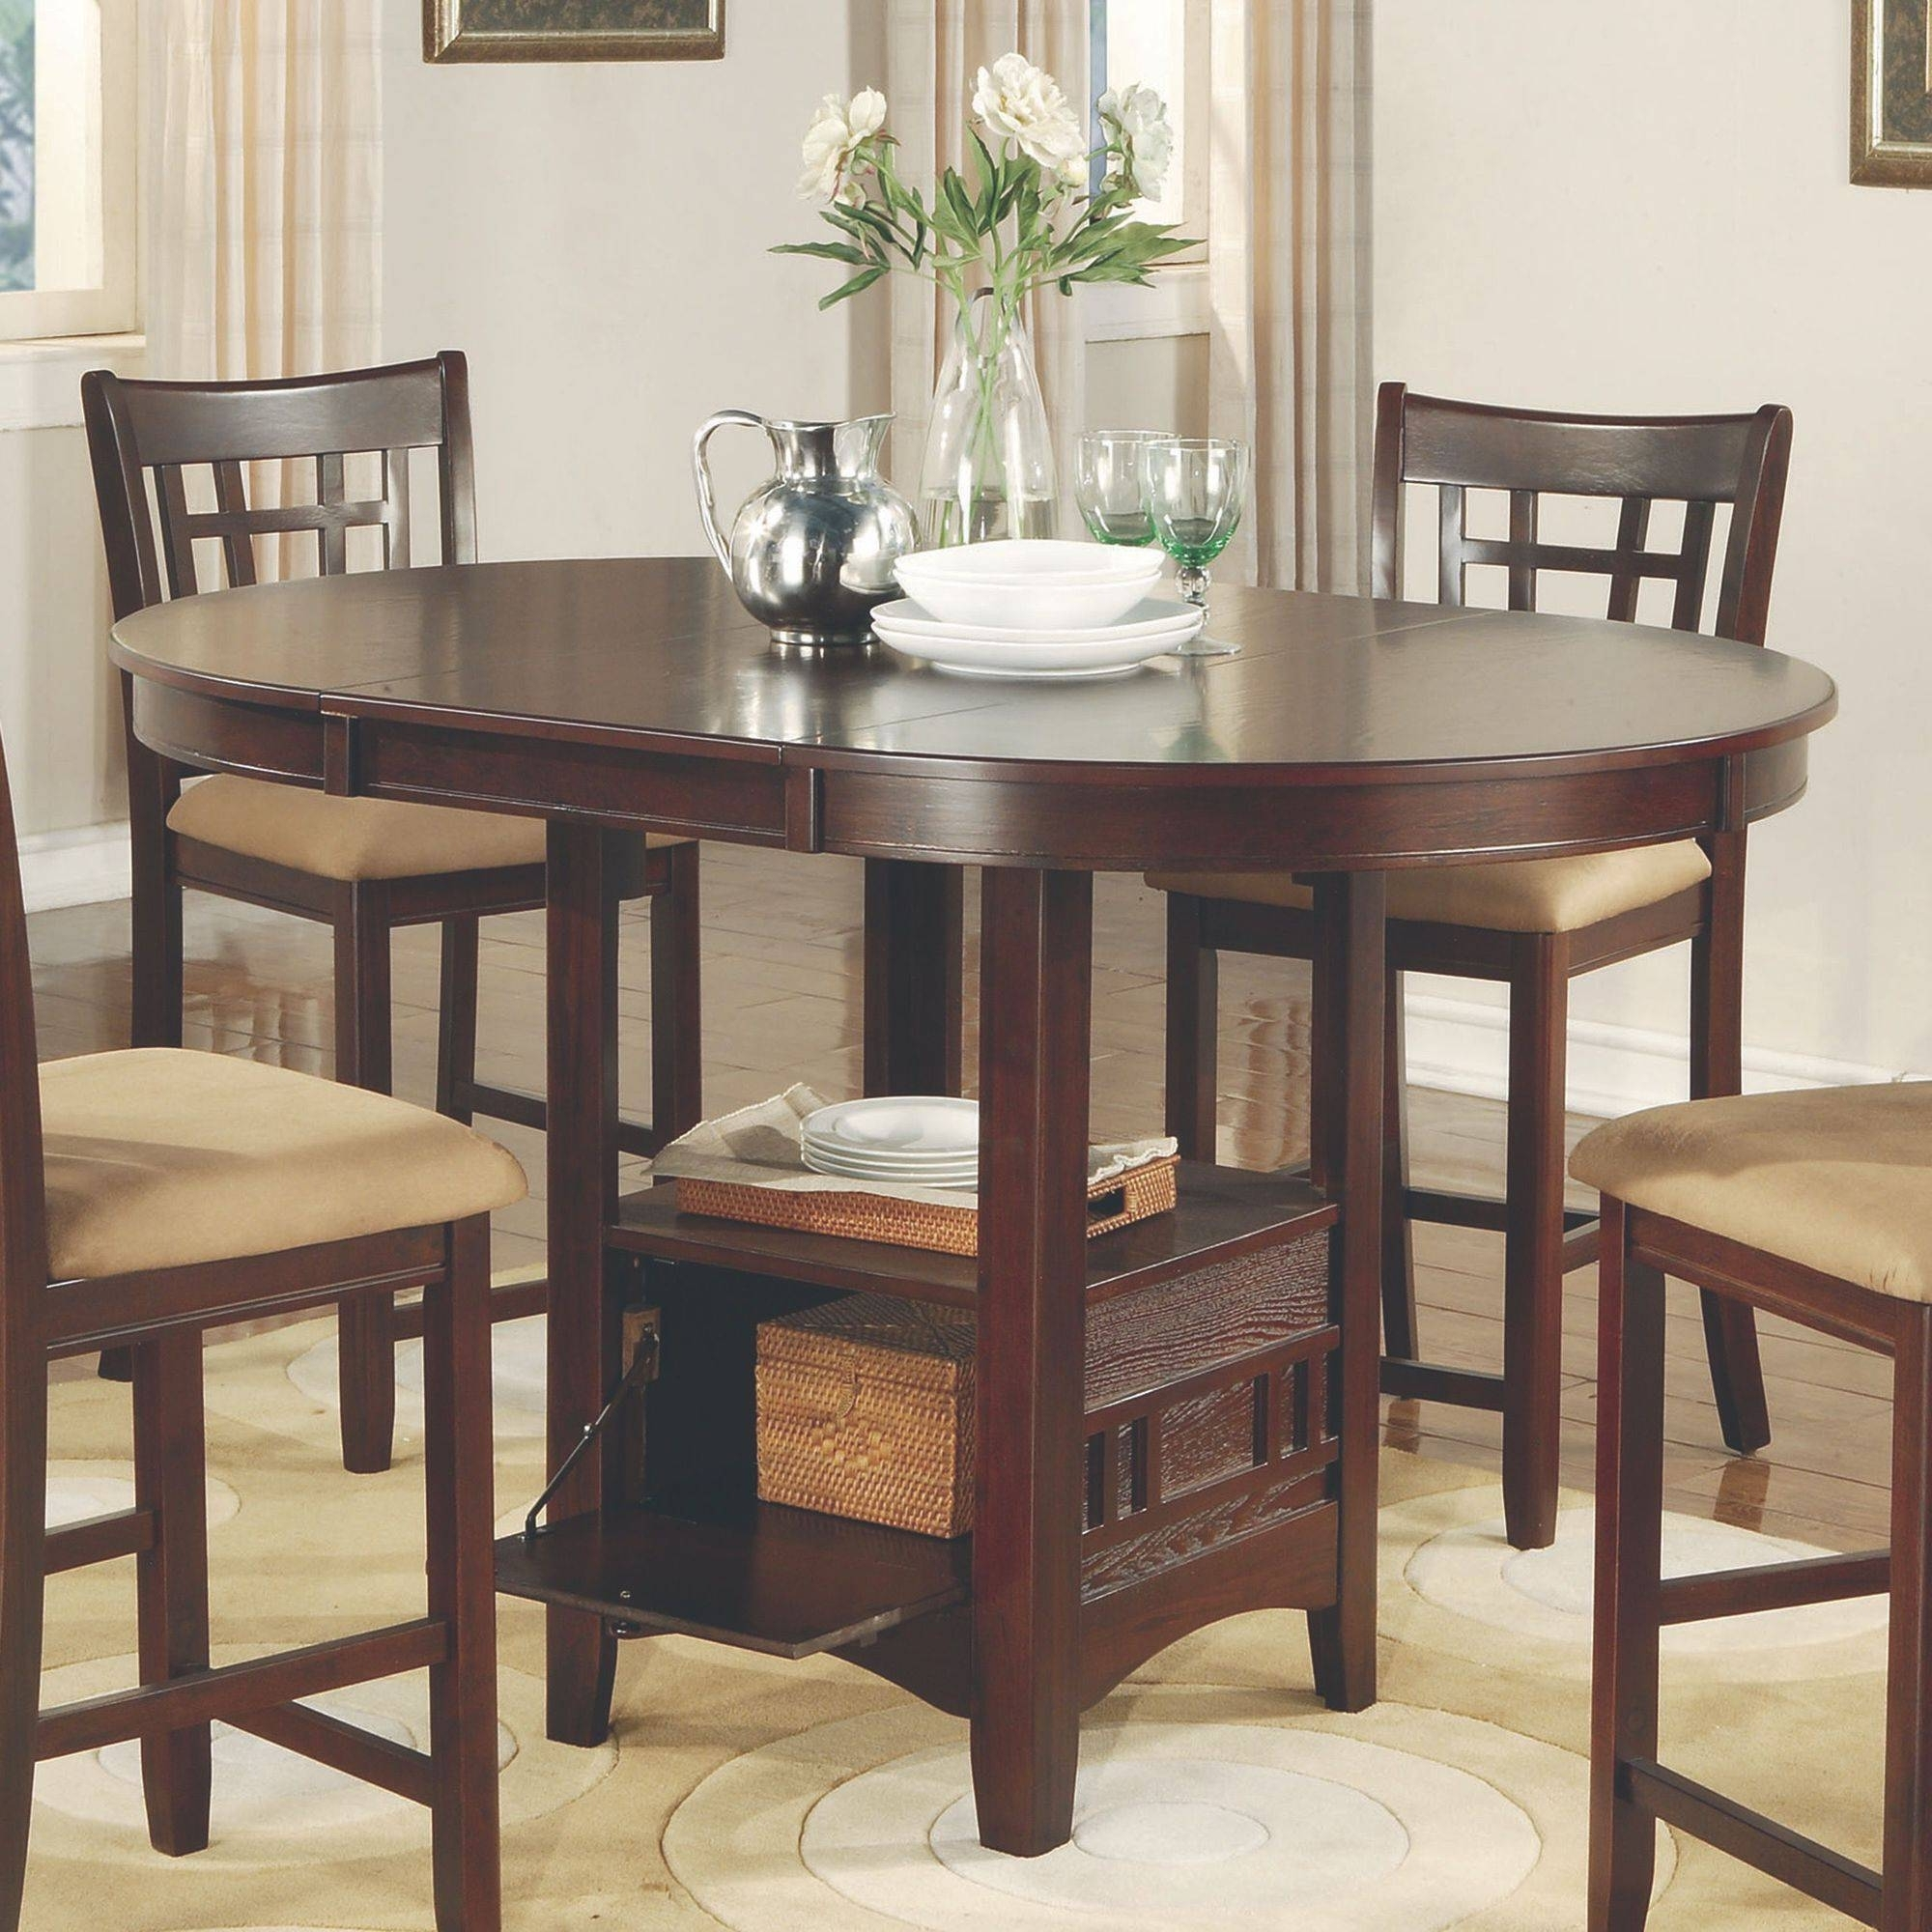 Extendable Round Dining Tables Sets throughout Famous Extendable Counter For Charming Pedestal Glass And Room Round Set